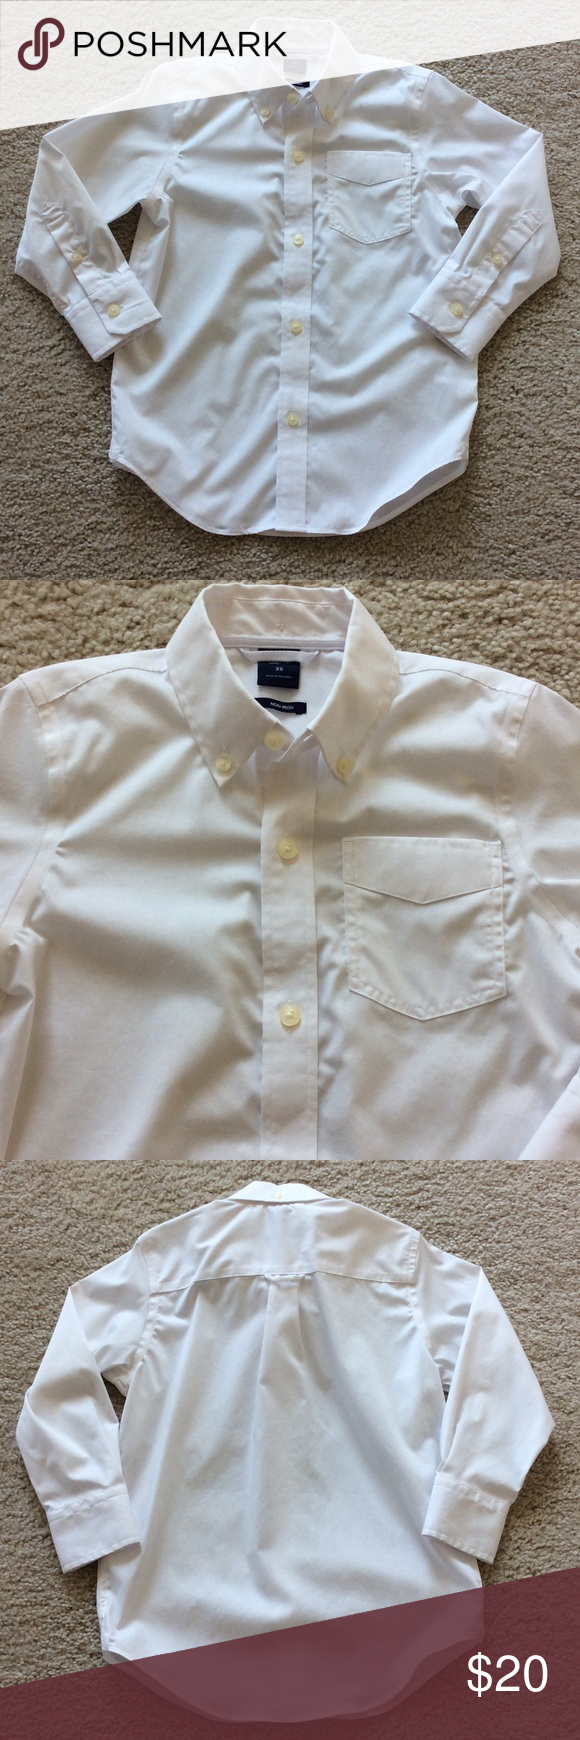 👫GAP Kids Non-Iron Solid Poplin Shirt GAP Kids Non-Iron Solid Poplin Shirt. White. Button front. 100% cotton. Size XS, which is size 4/5 according to GAP size chart. Purchased this as a 'just in case' shirt and was never worn! NWOT, never worn. GAP Shirts & Tops Button Down Shirts